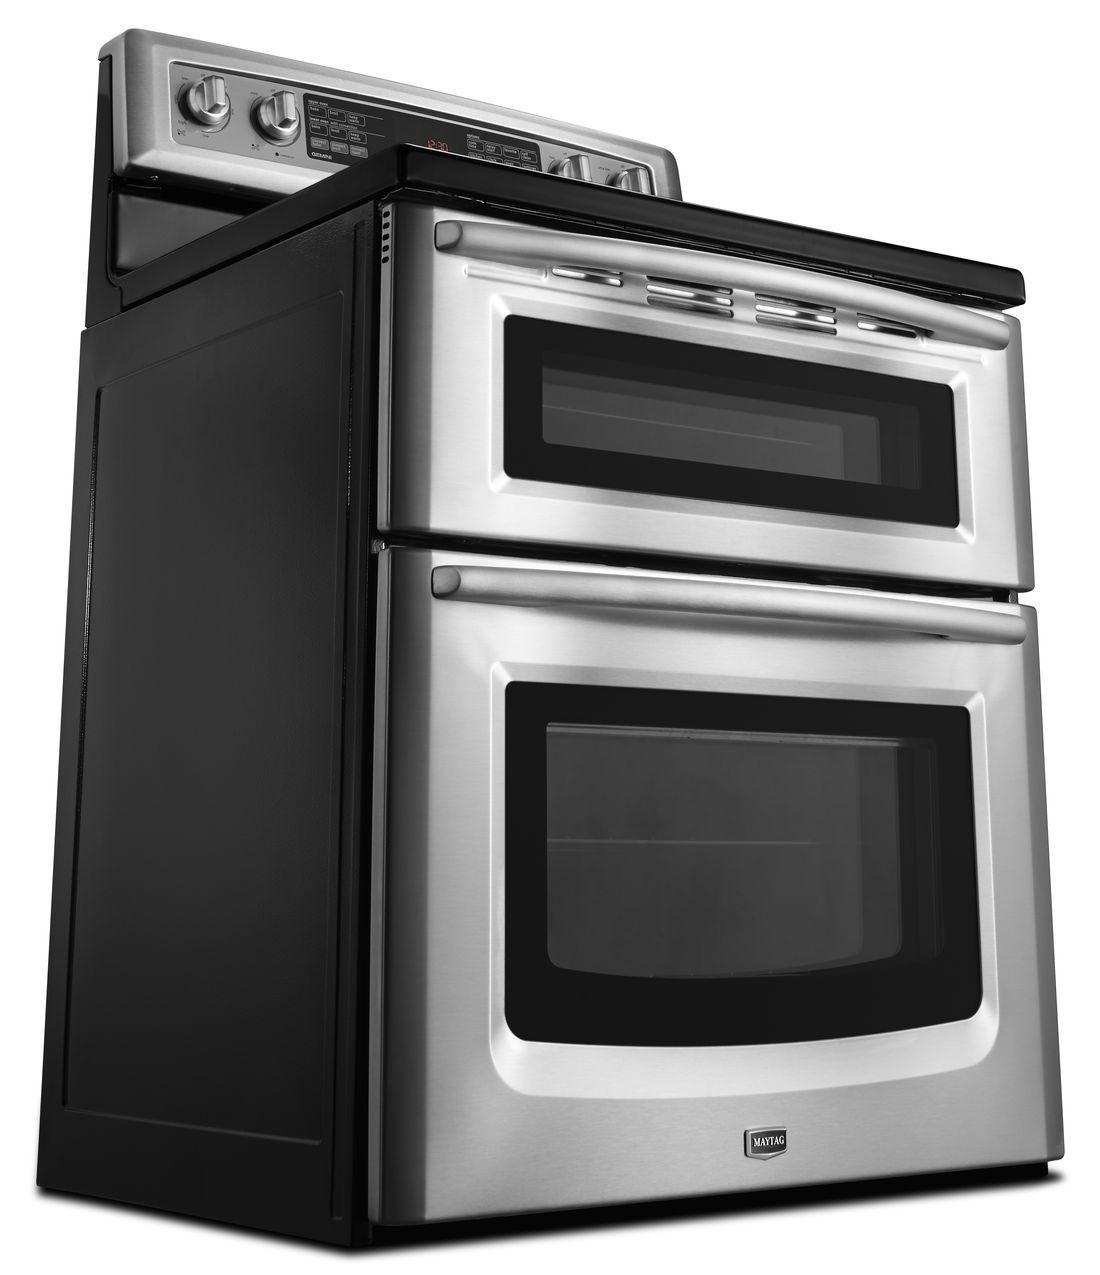 Met8776bw maytag met8776bw electric ranges white - Maytag electric double oven range ...